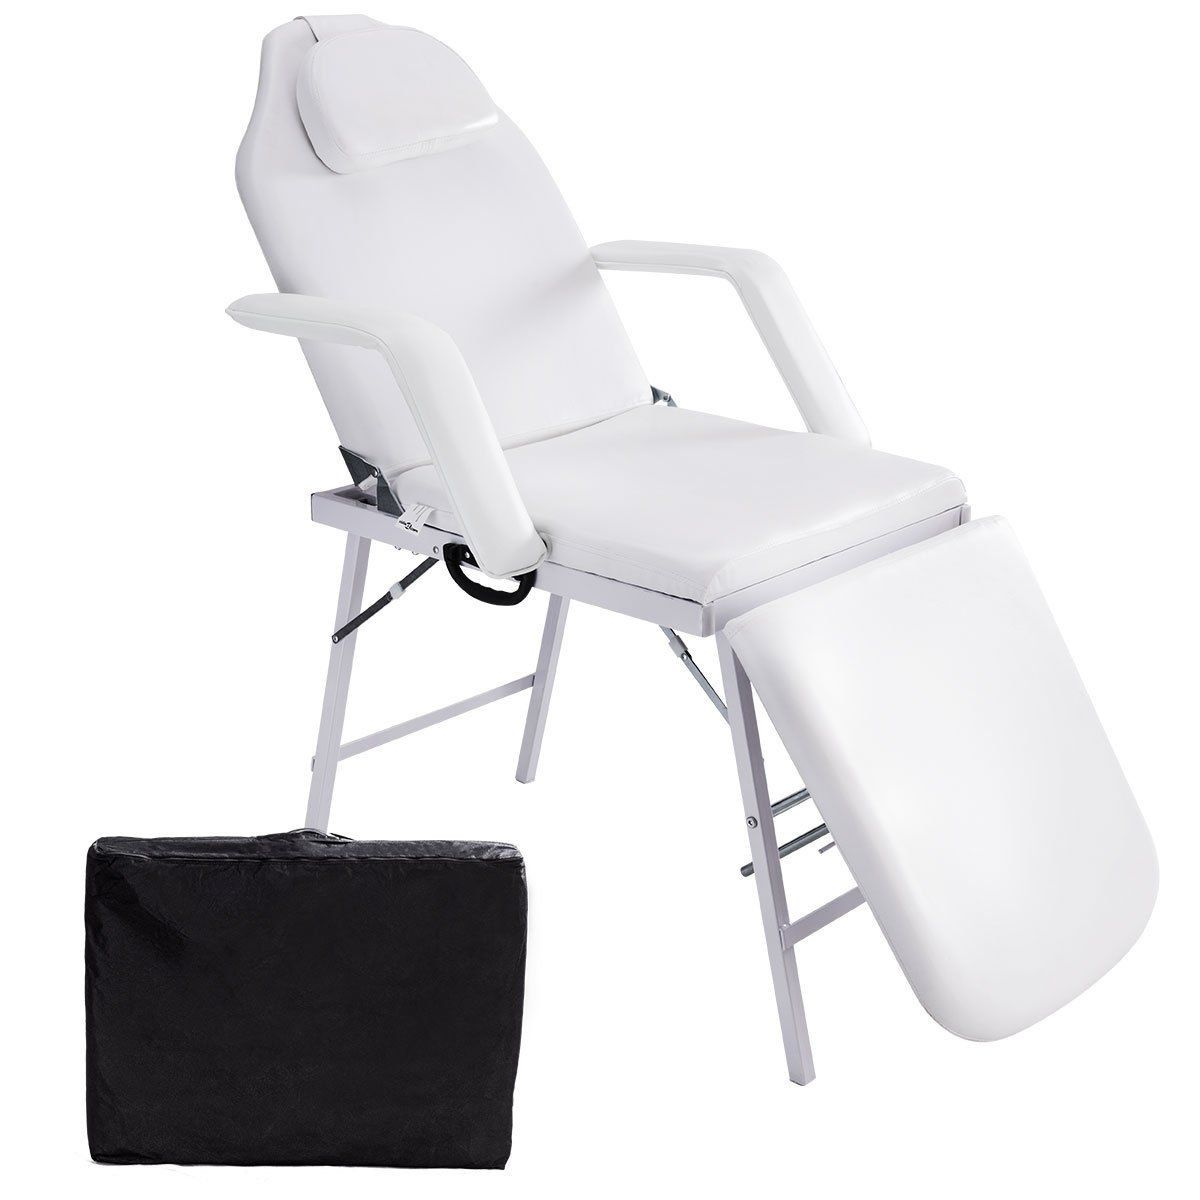 Giantex73 Portable Tattoo Parlor Spa Salon Facial Bed Beauty Massage Table Chair Click Image For More Details Massage Table Beauty Chair Table And Chairs